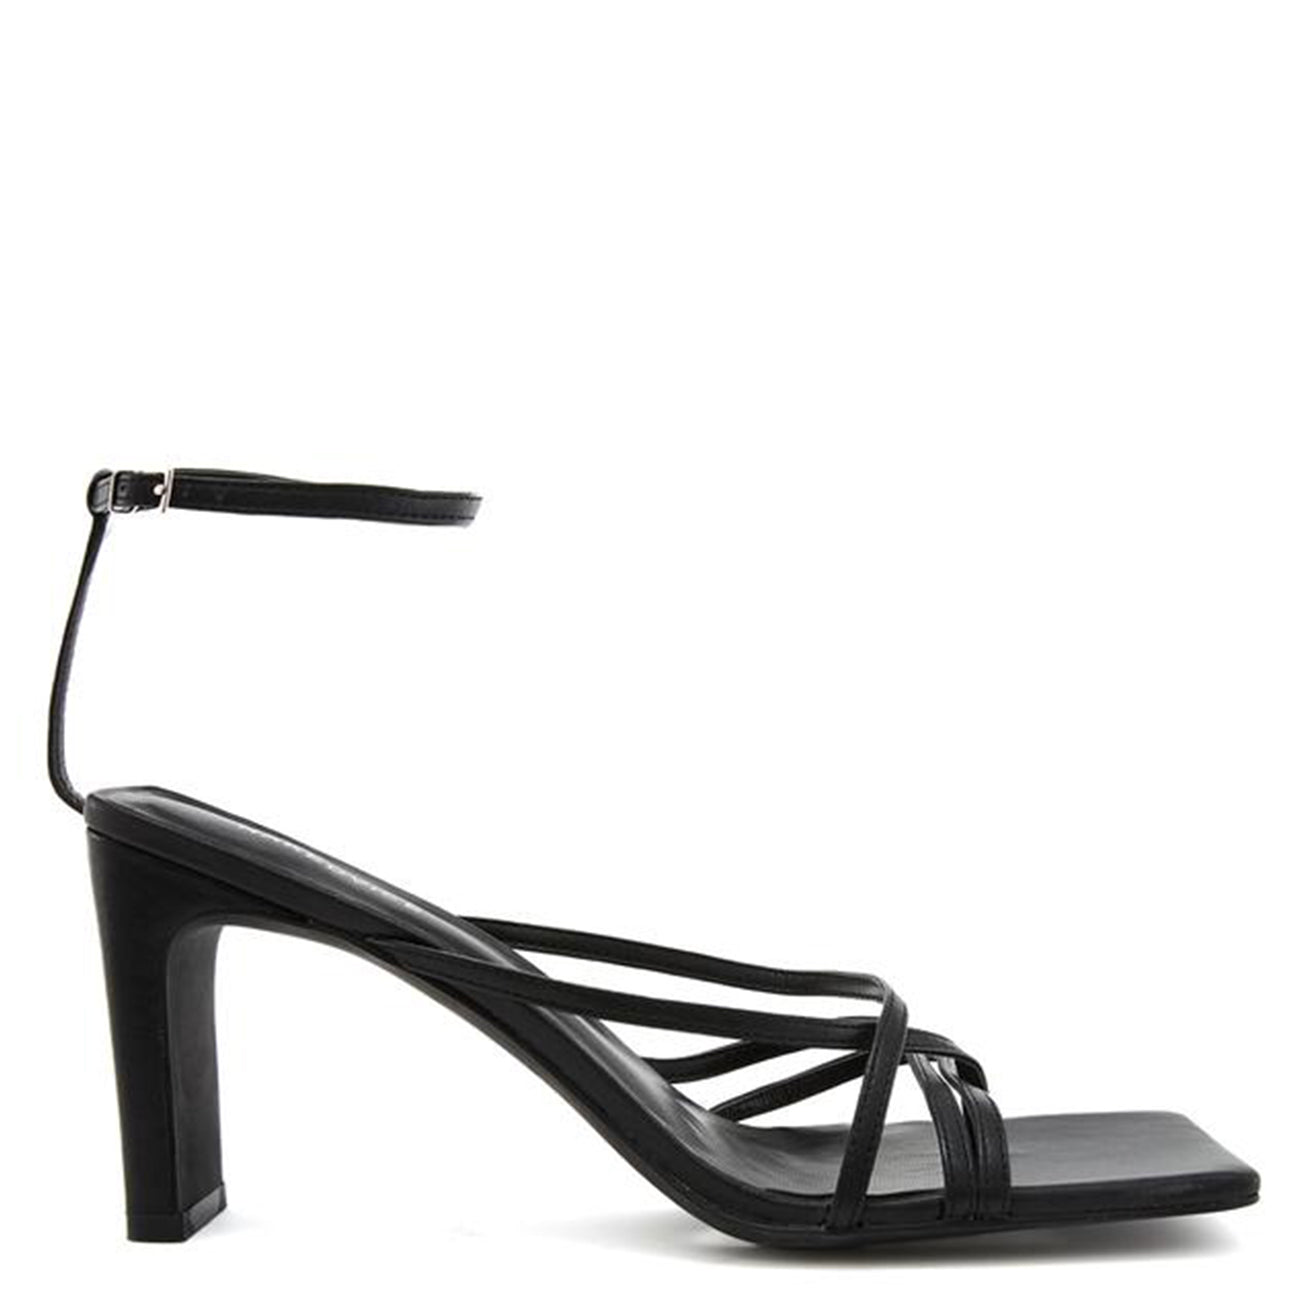 THE AYLA BLACK HEEL